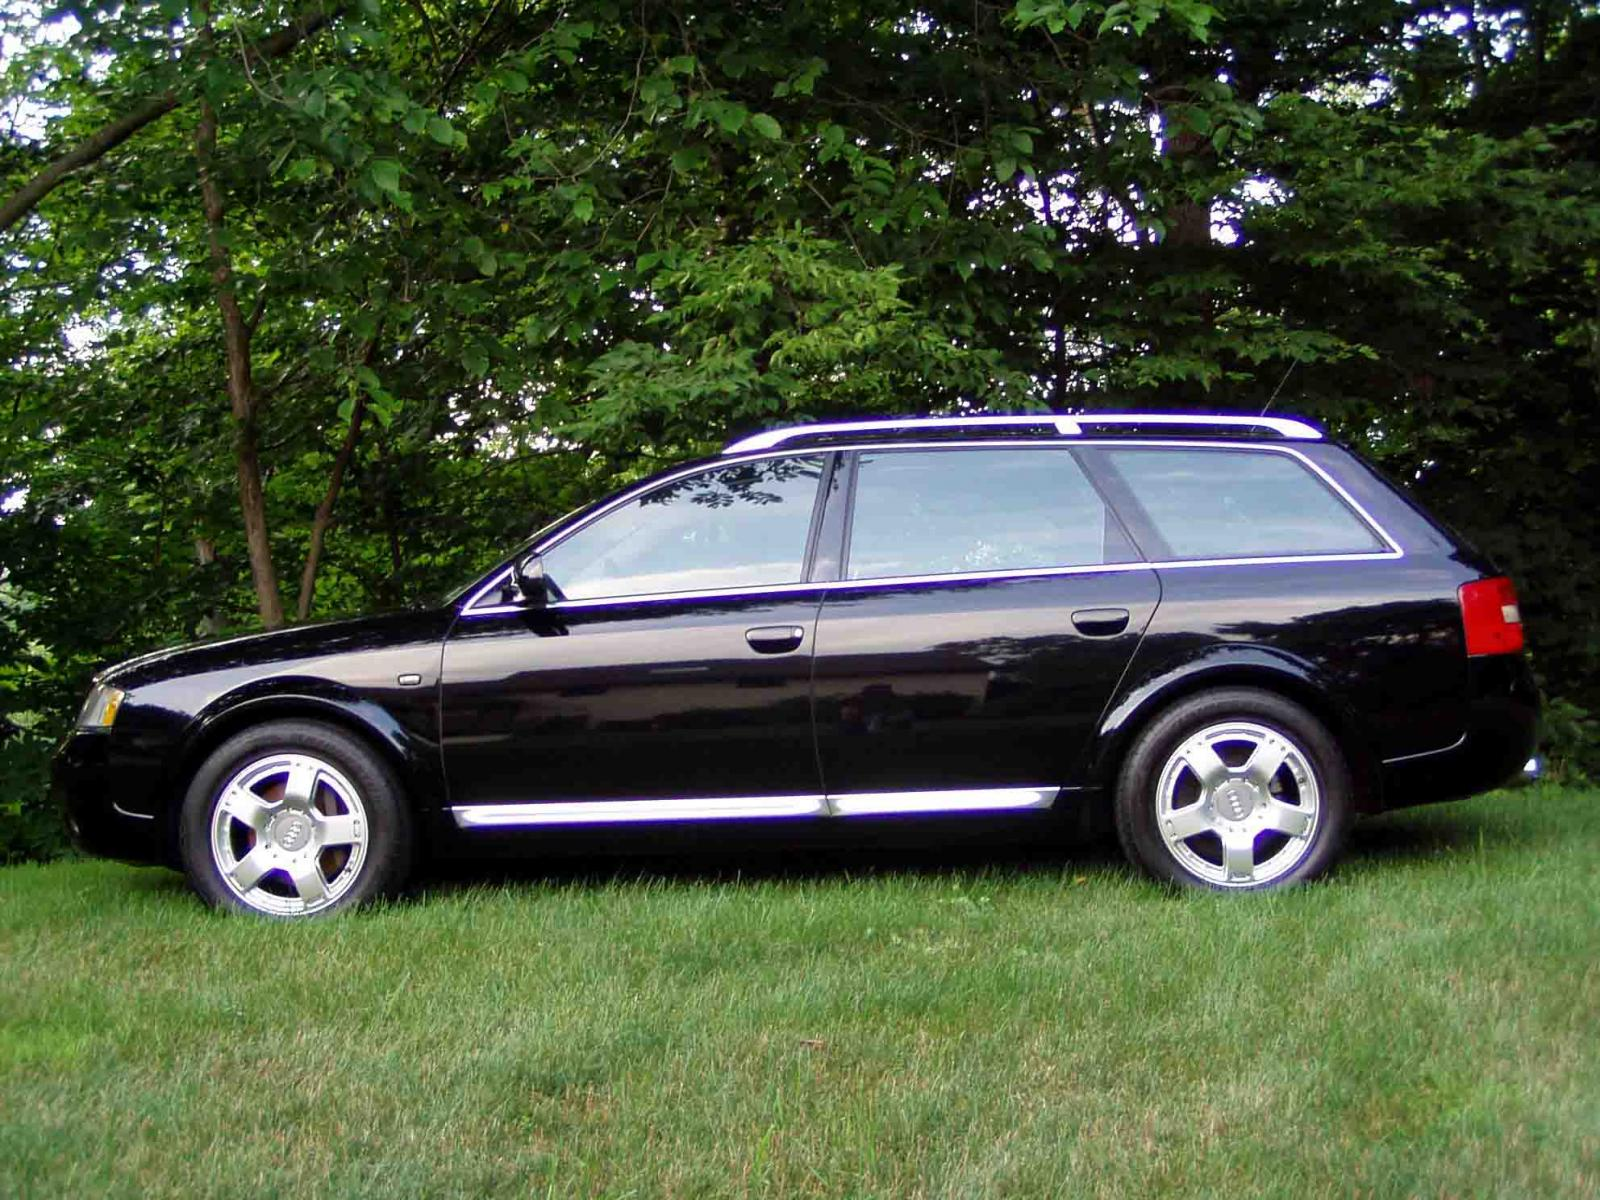 2004 audi allroad quattro information and photos zombiedrive. Black Bedroom Furniture Sets. Home Design Ideas